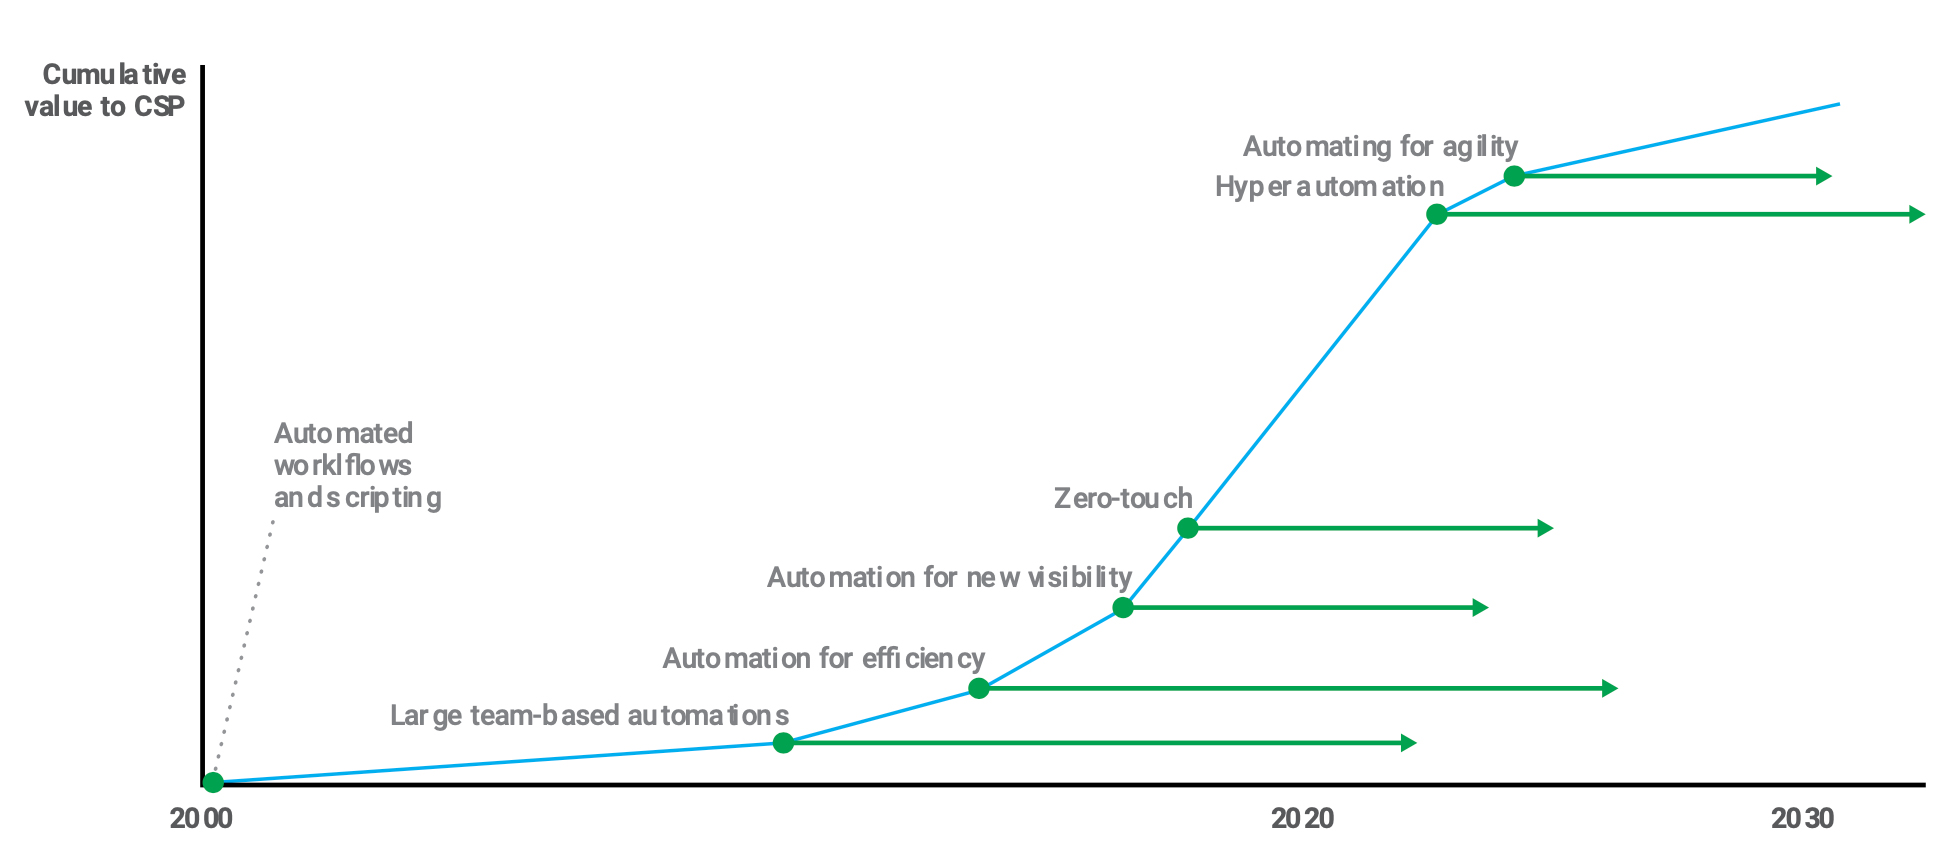 Automation value curve